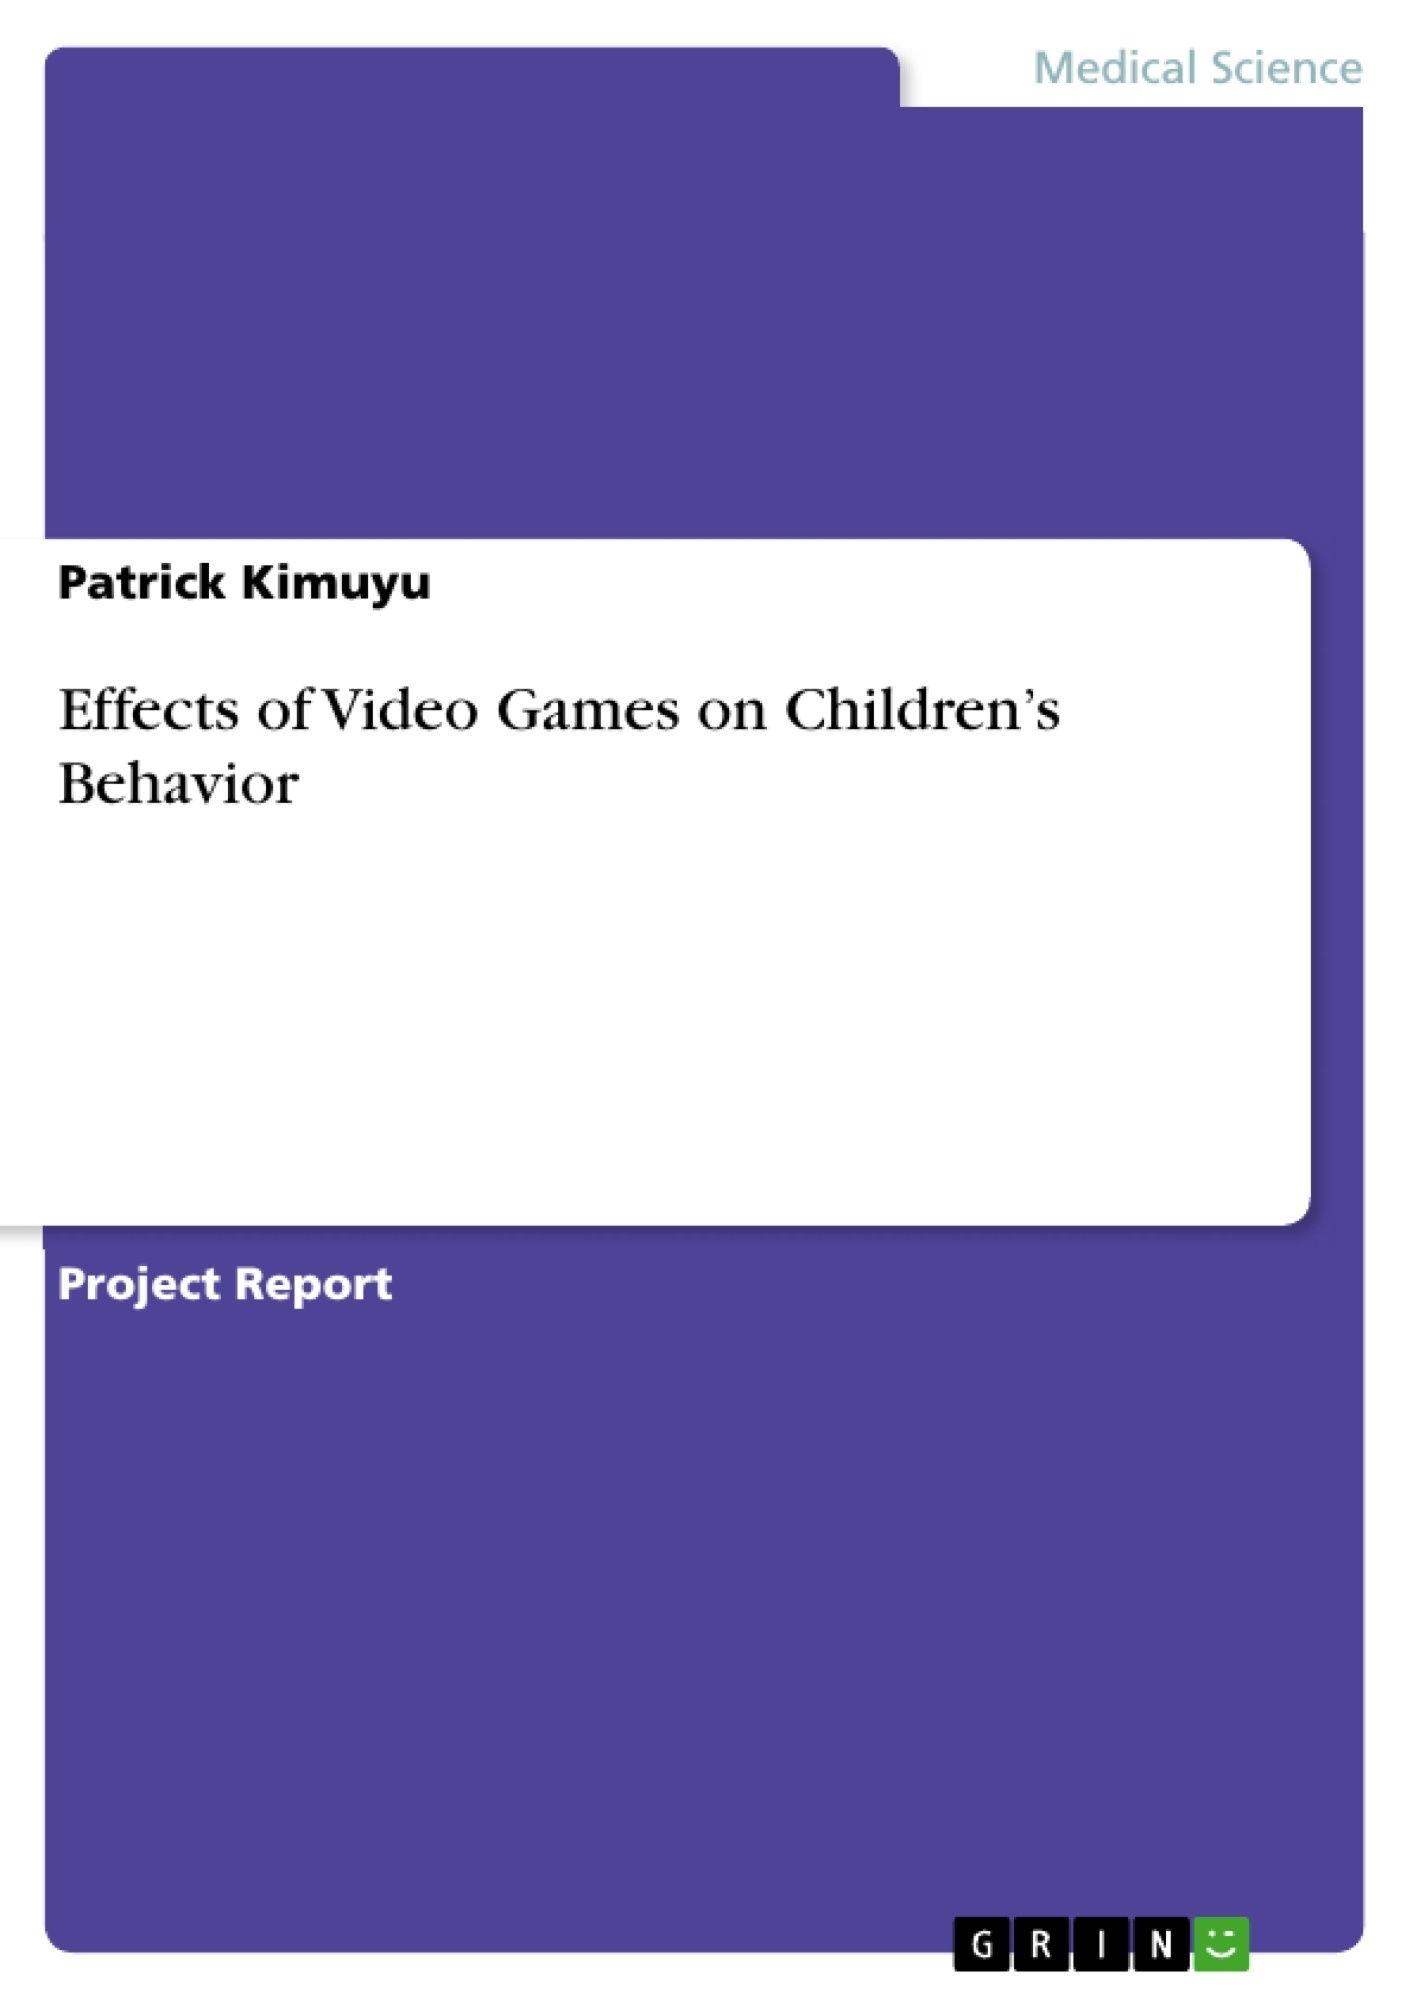 Title: Effects of Video Games on Children's Behavior